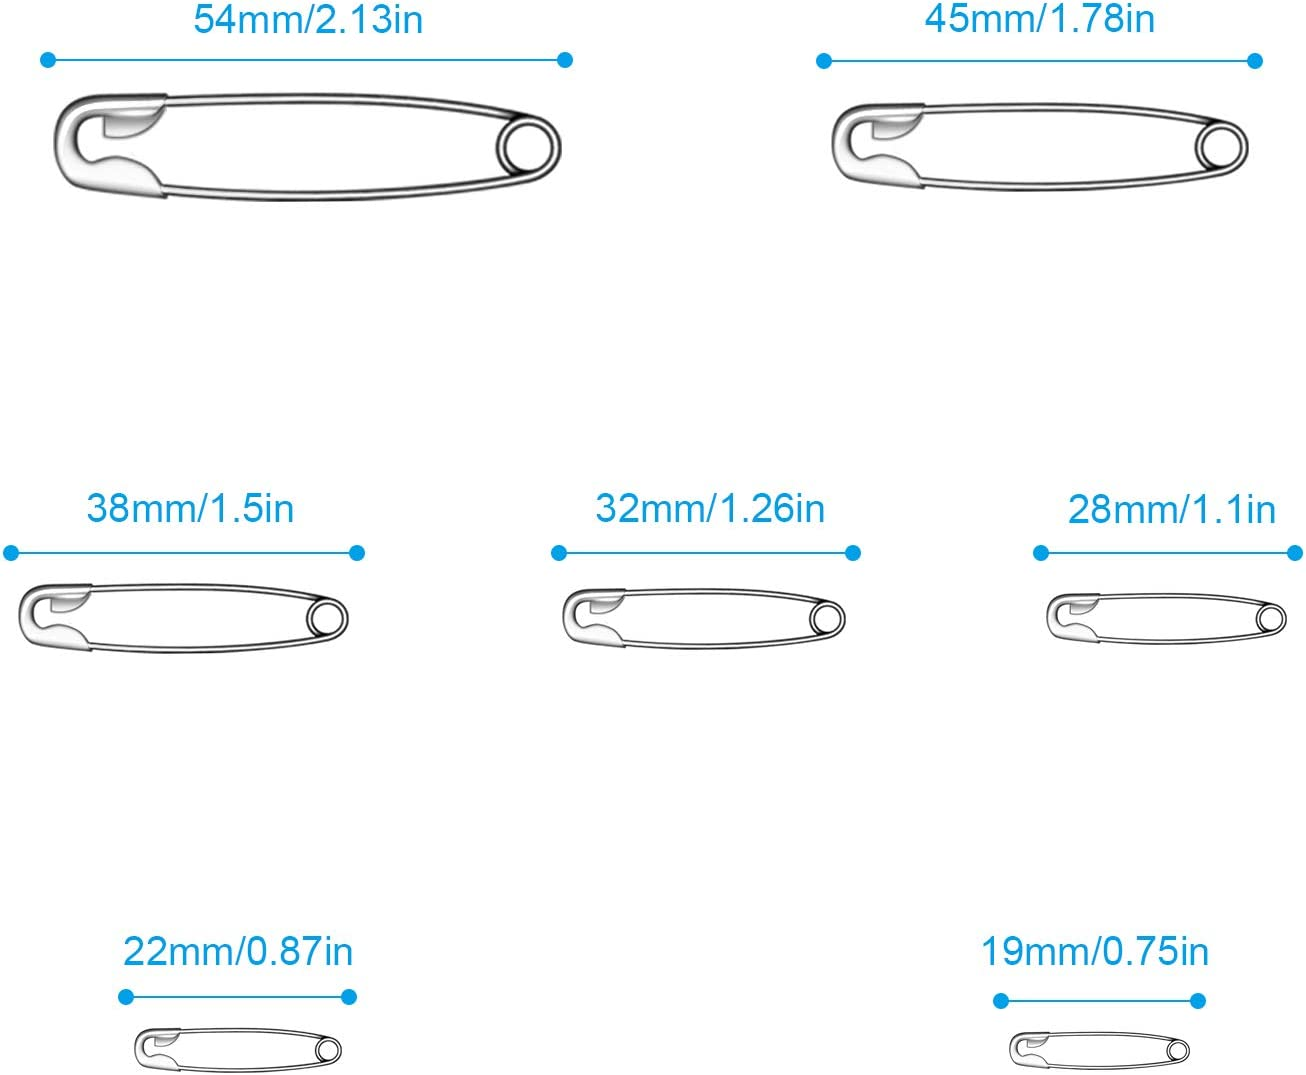 Sewing Craft Cloths Jewelry Making Premium Safety Pins Large Safety pins Set Durable 7 Sizes 19mm 54mm for Home office 500PCS Safety Pins